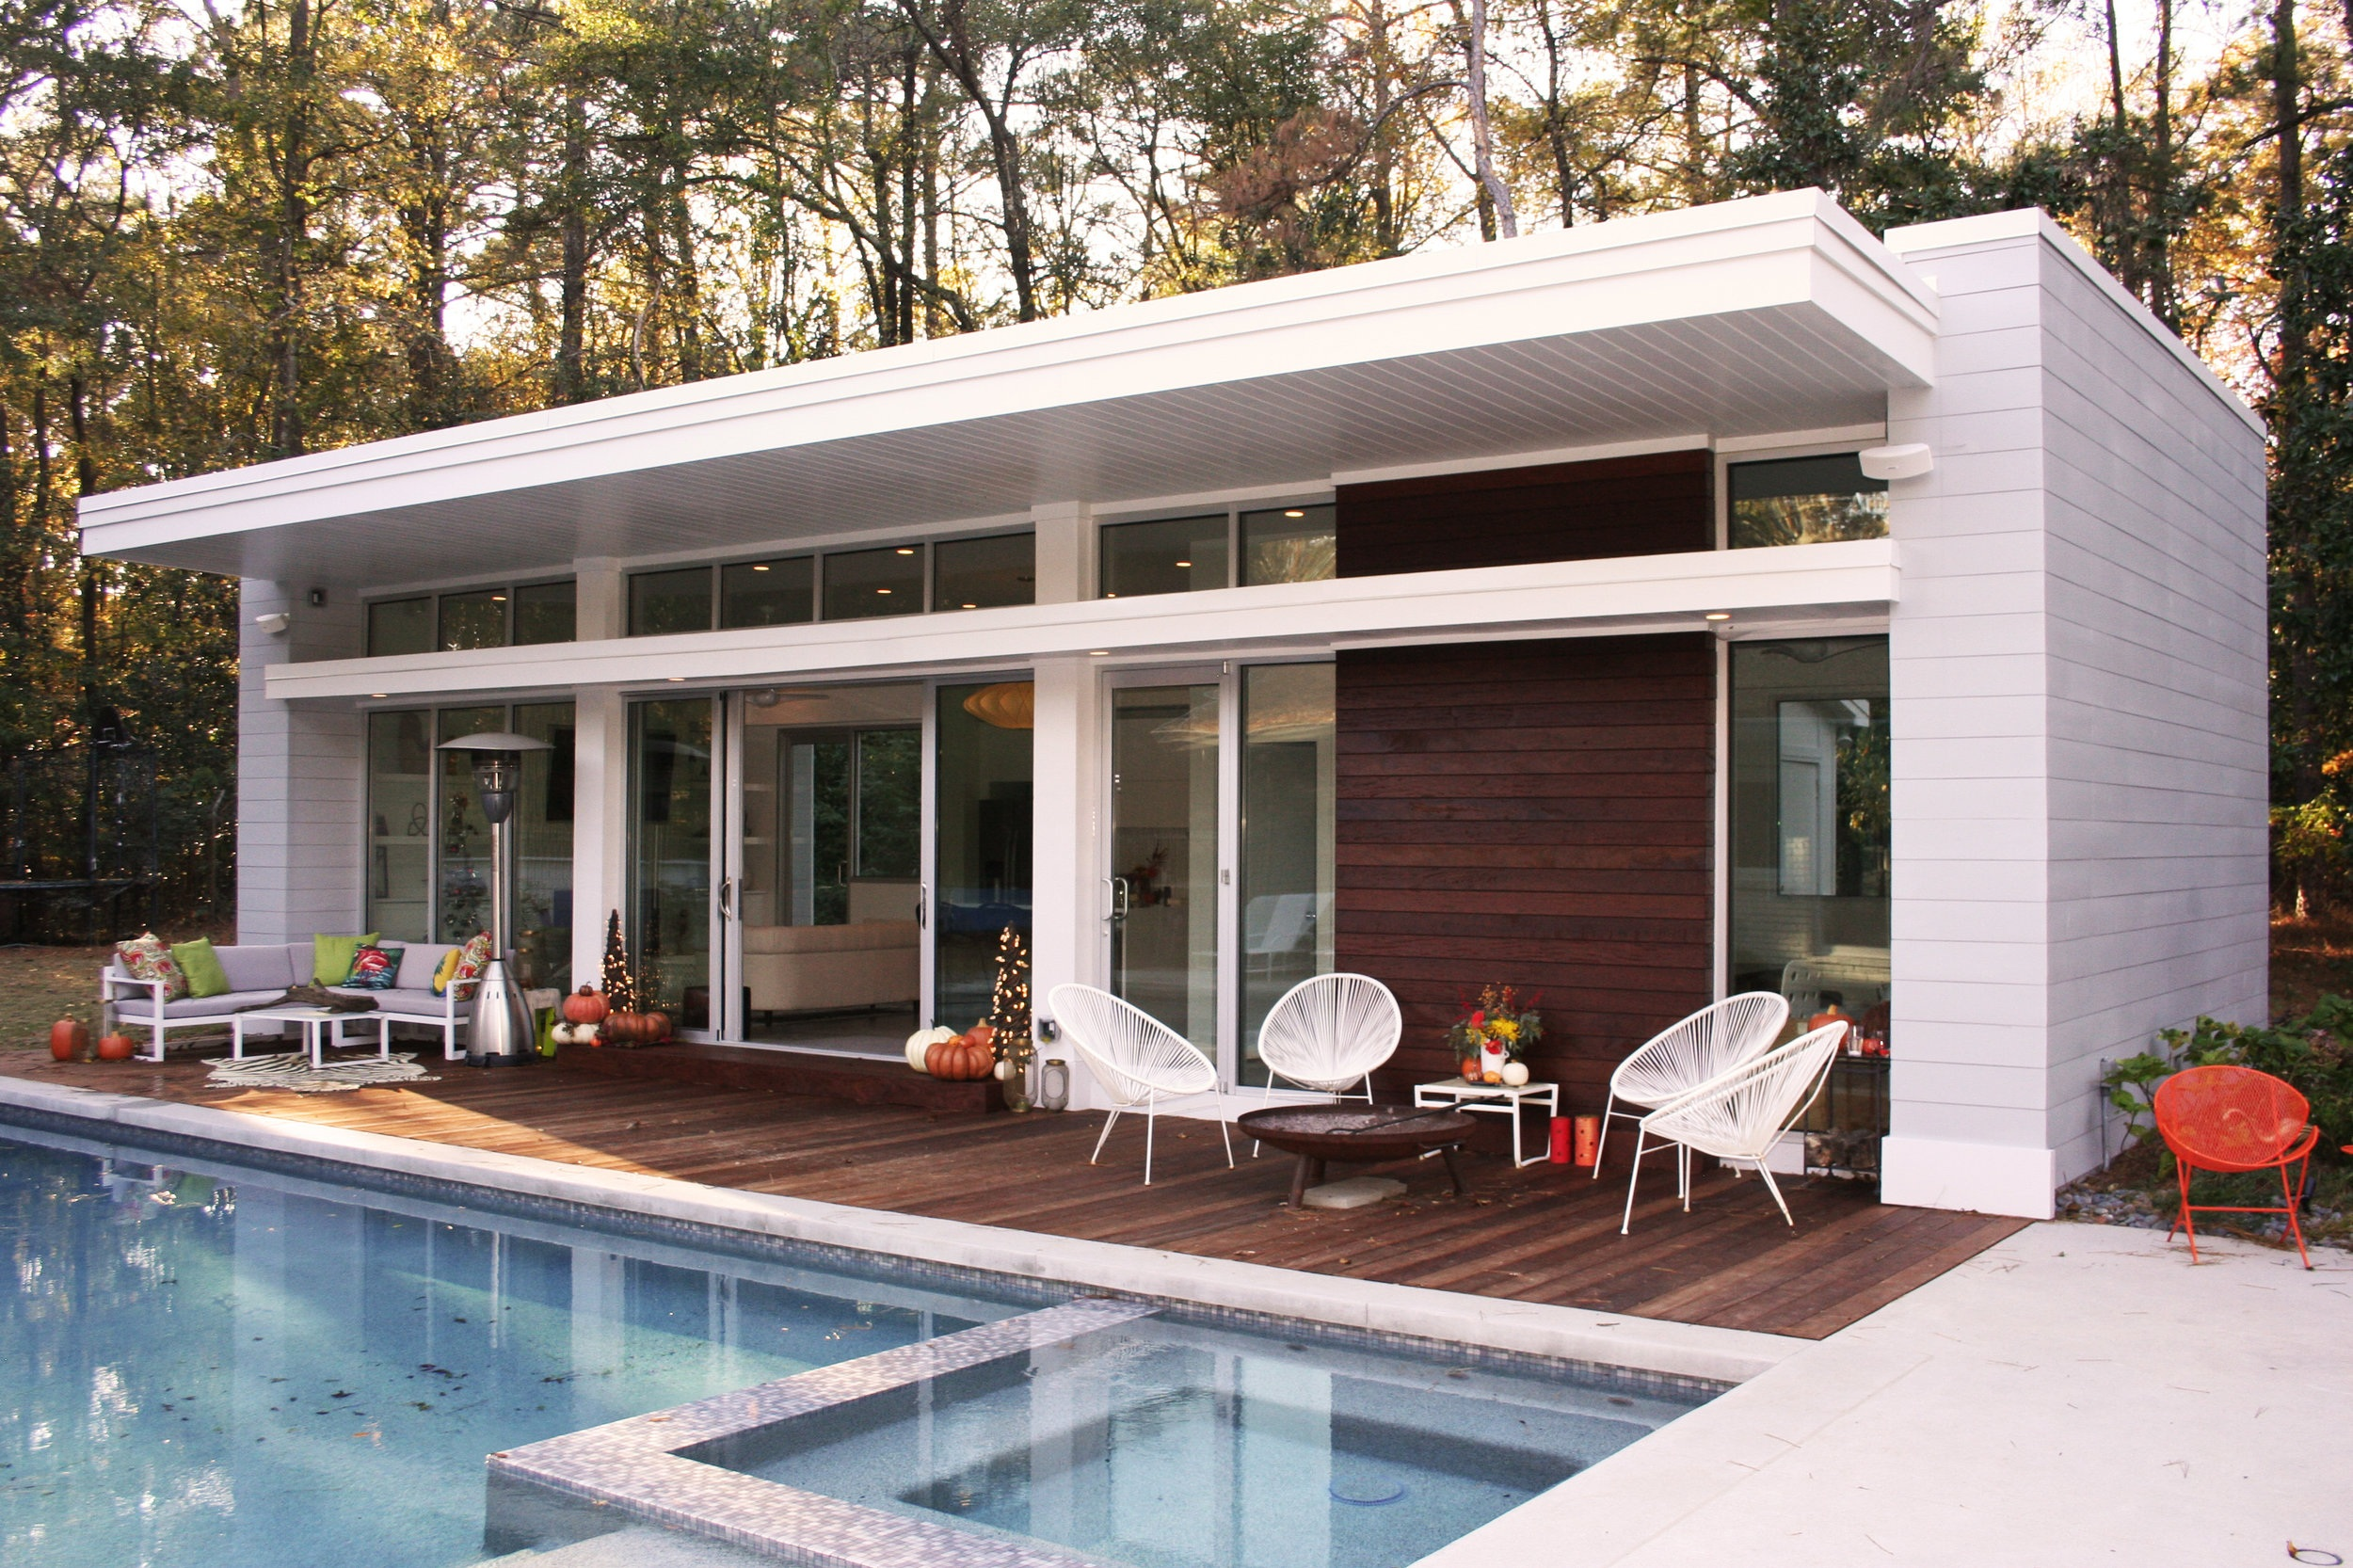 New pool house and renovation design of a 1950s midcentury modern ranch house located in the Buckhead area of Atlanta.